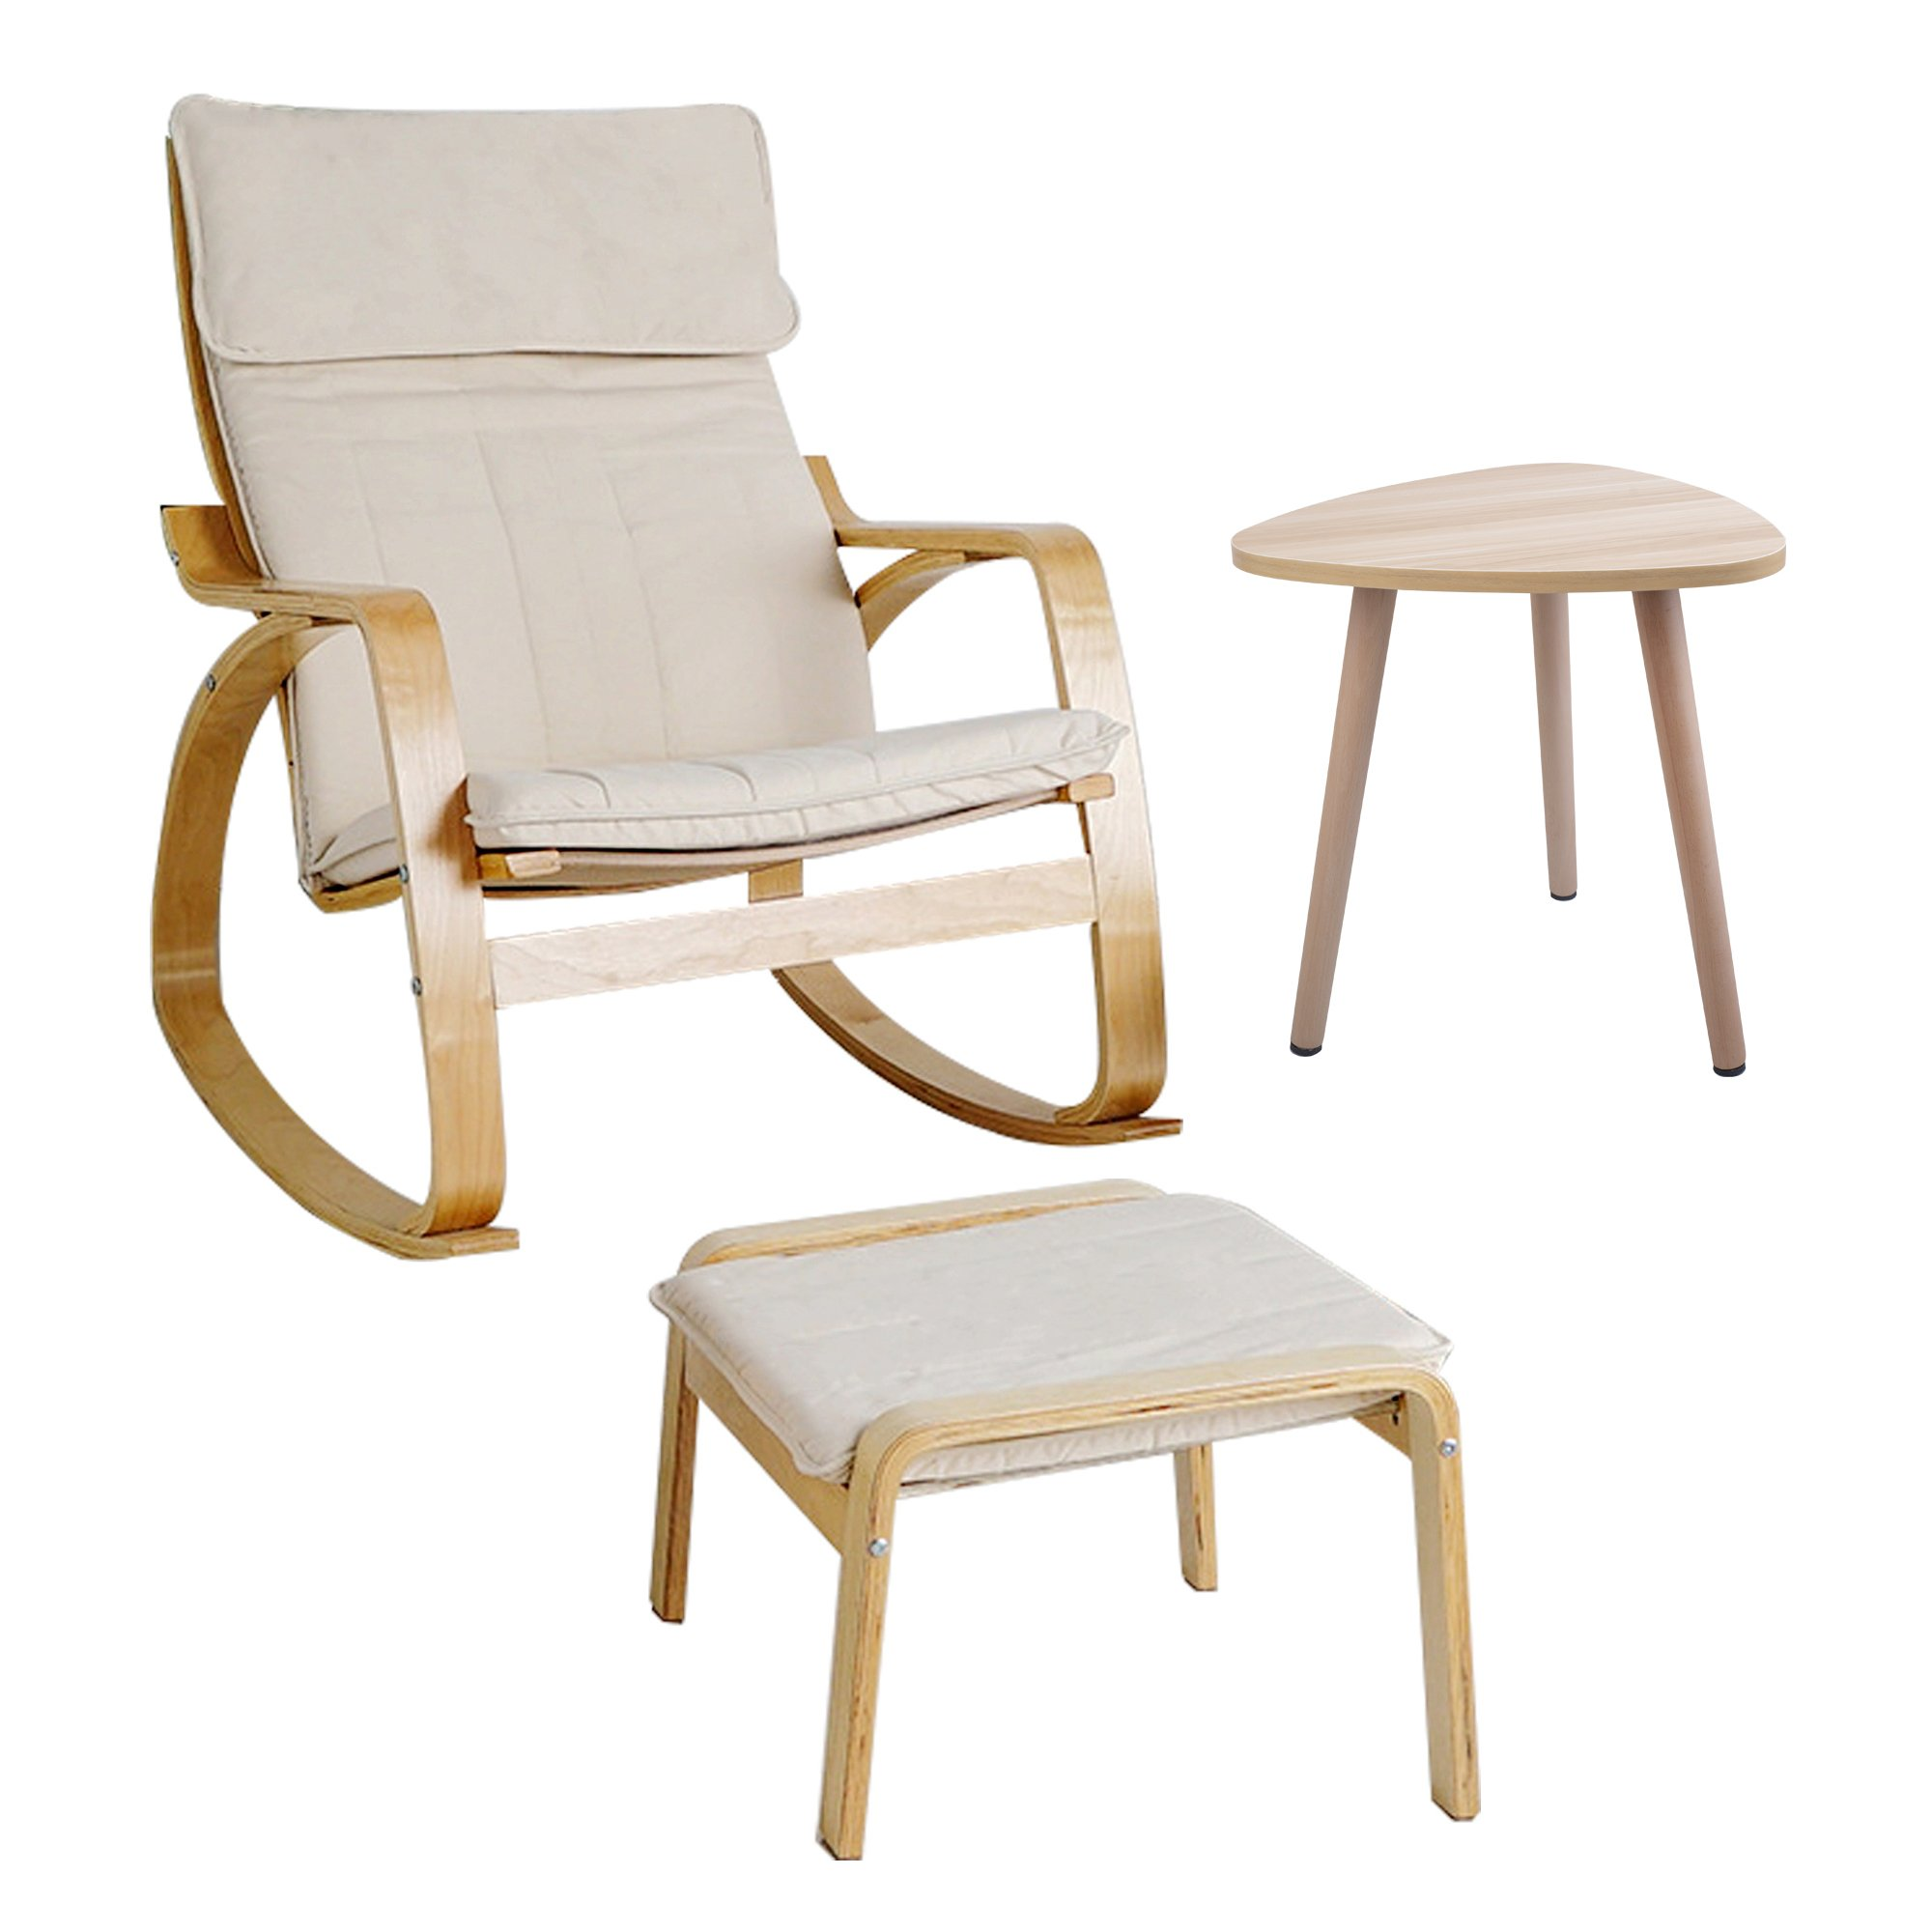 Rocking Chair Footstool Side Table Set